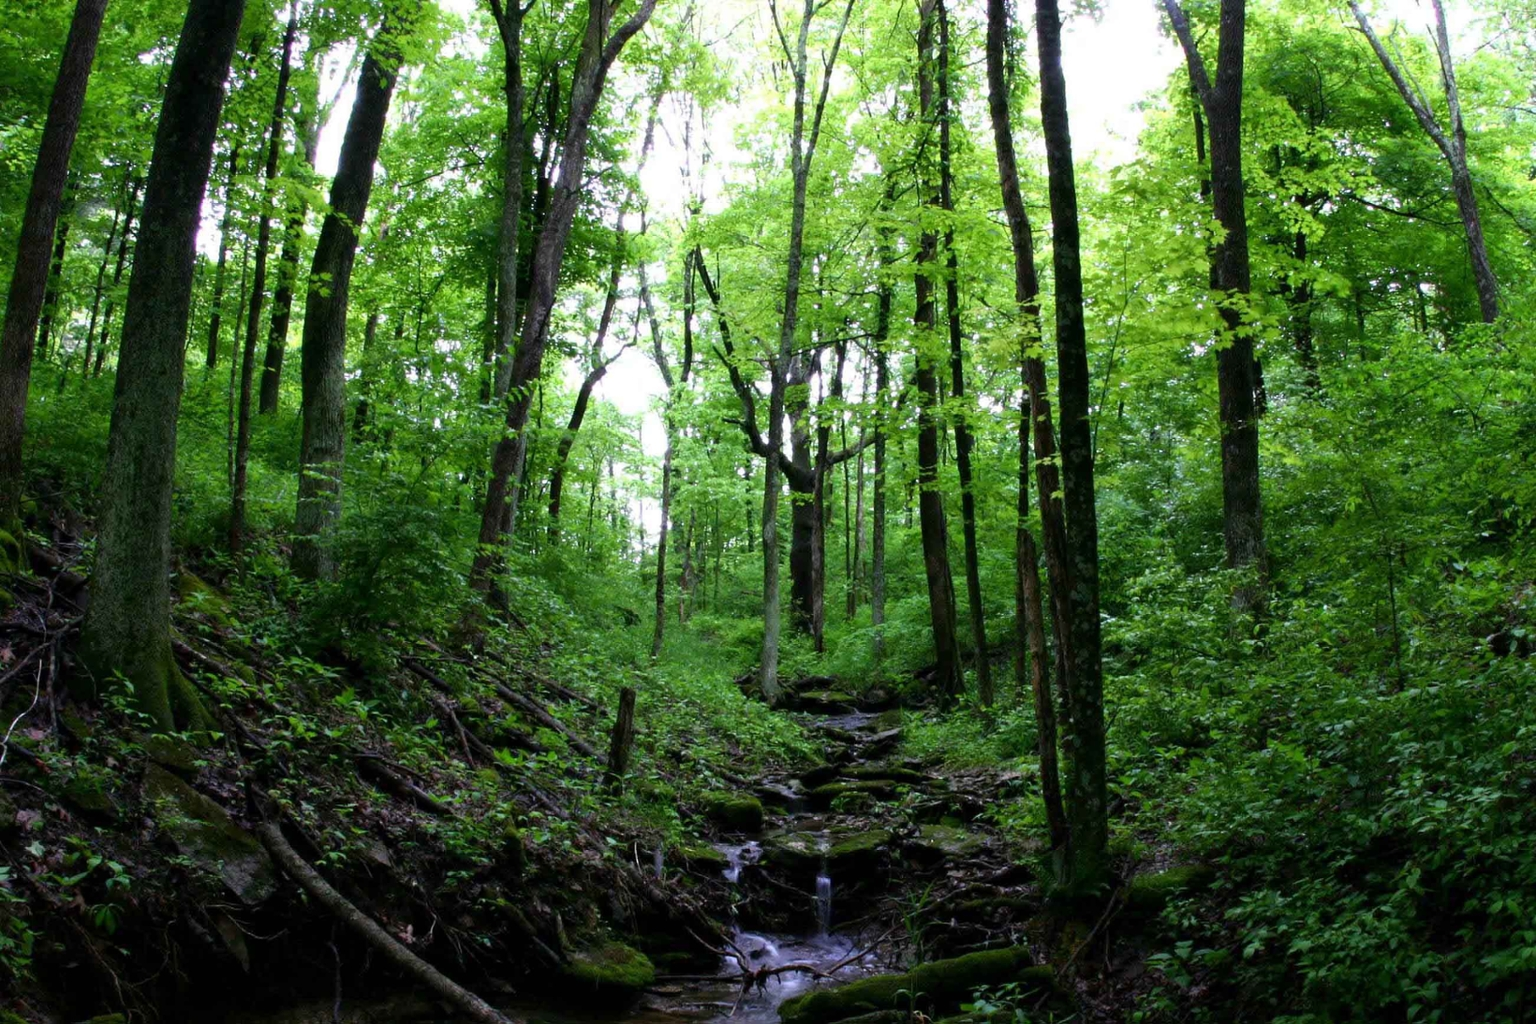 Green trees in a lush forest saved by increased environmental conservation efforts.